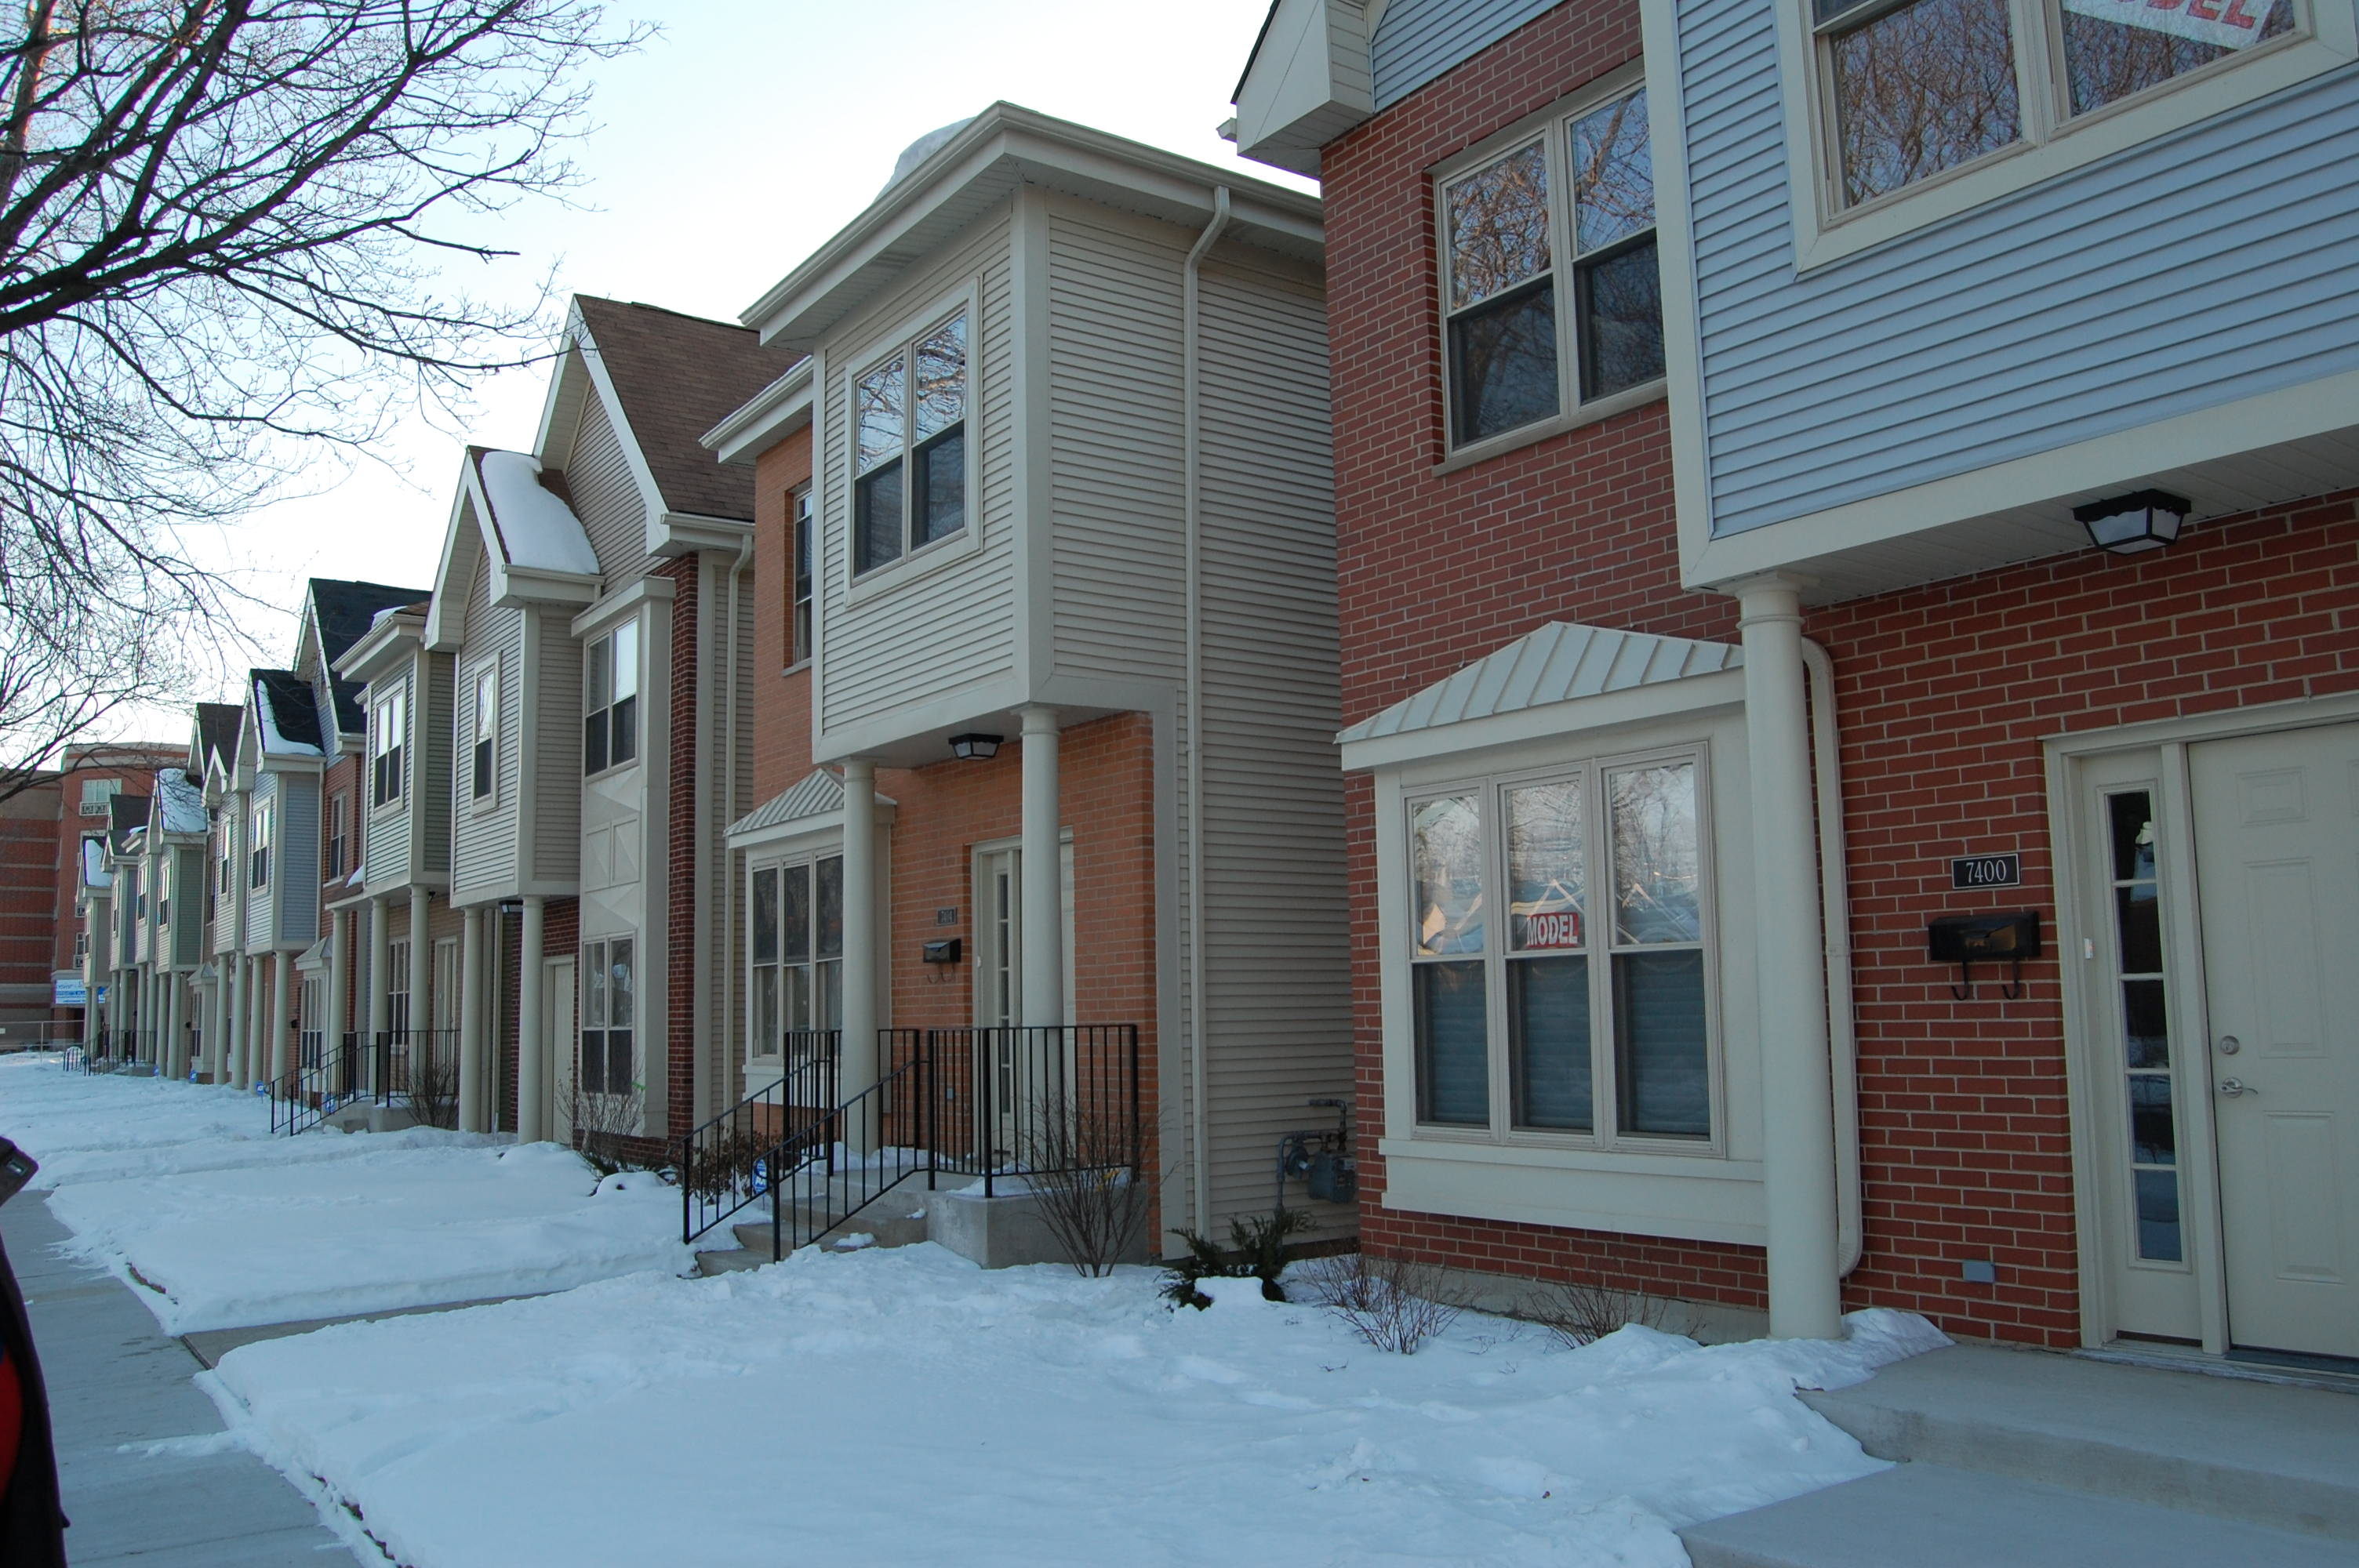 Affordable housing at Marquette Village – YoChicago